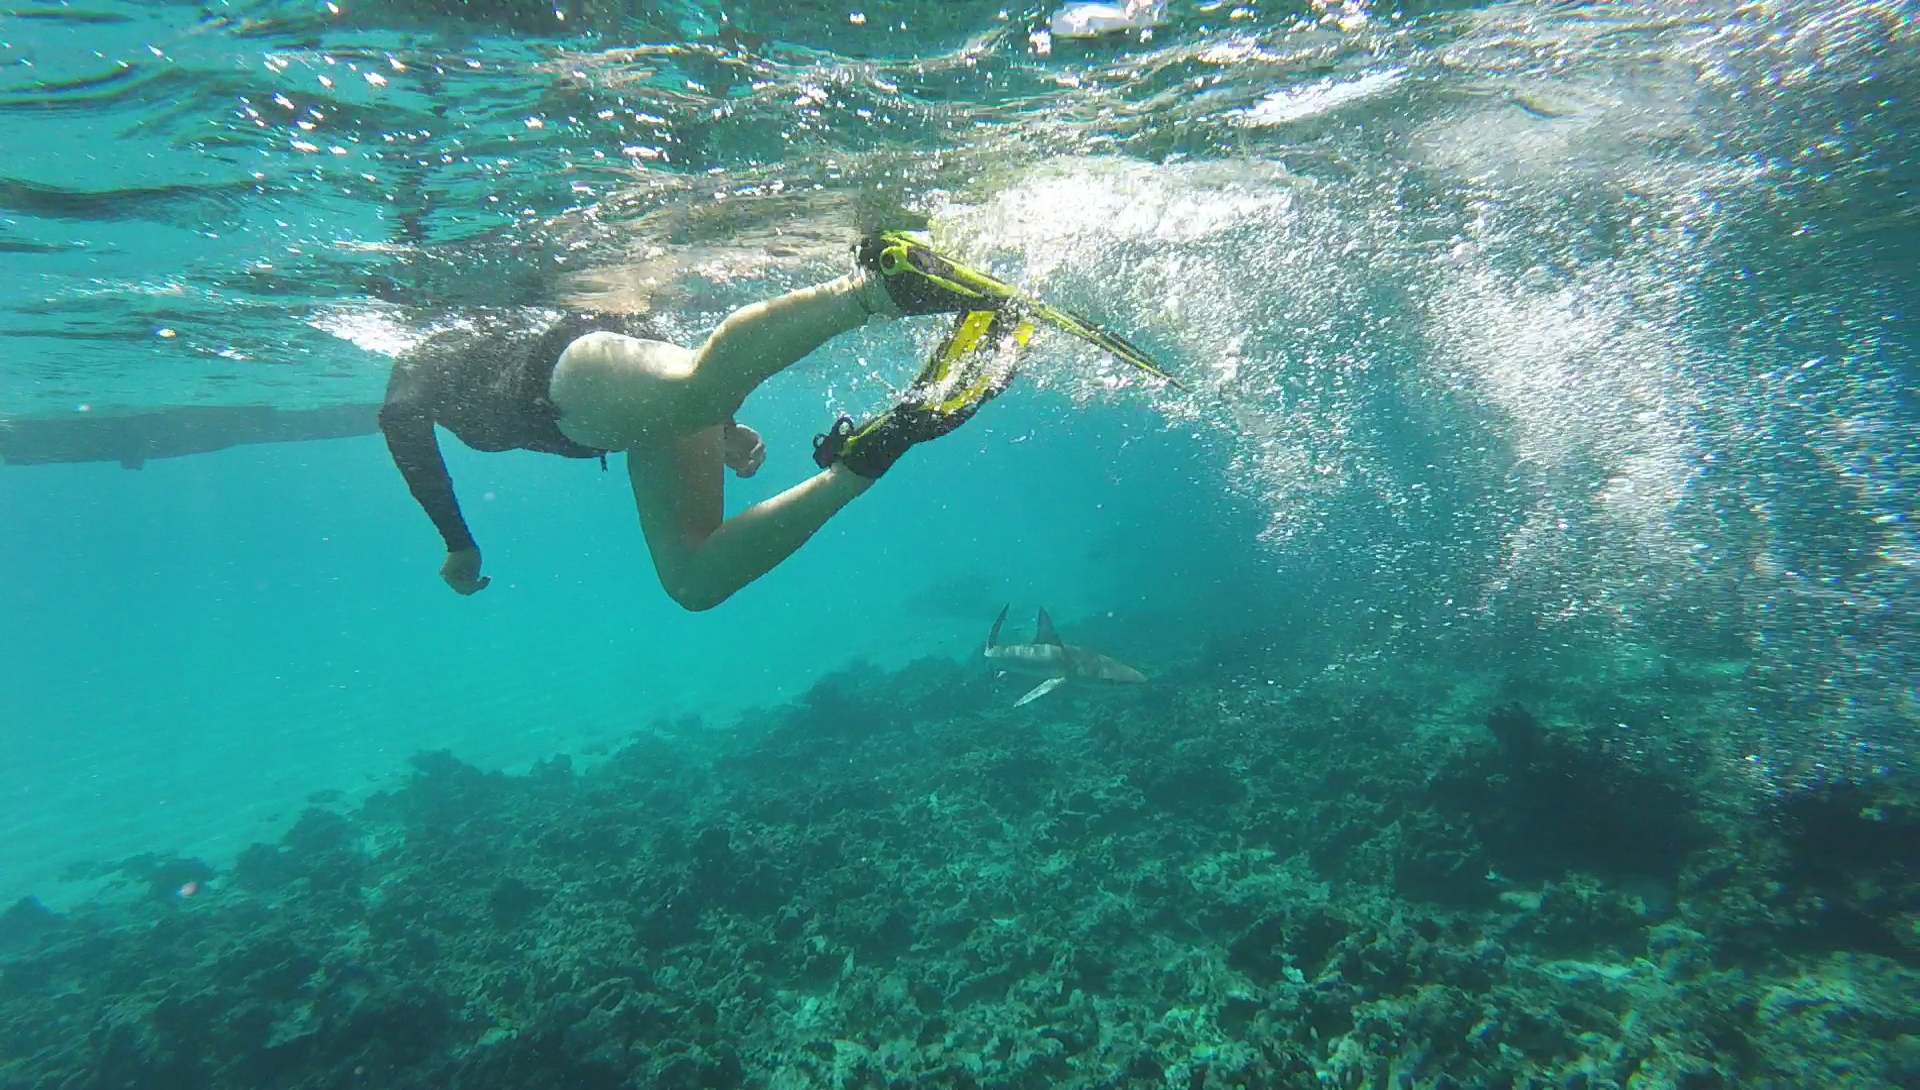 Swimming with sharks at Middleton reef